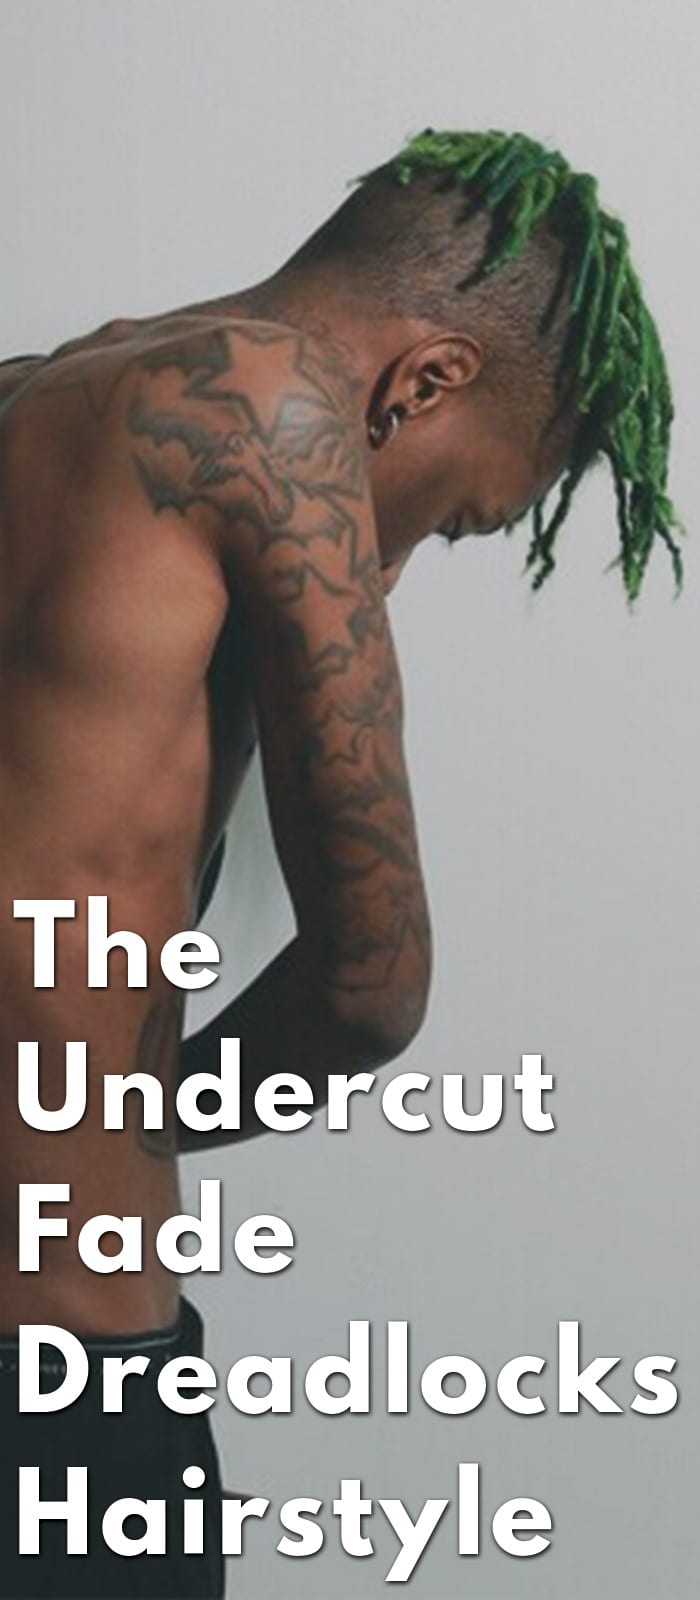 The Undercut Fade Dreadlocks Hairstyle